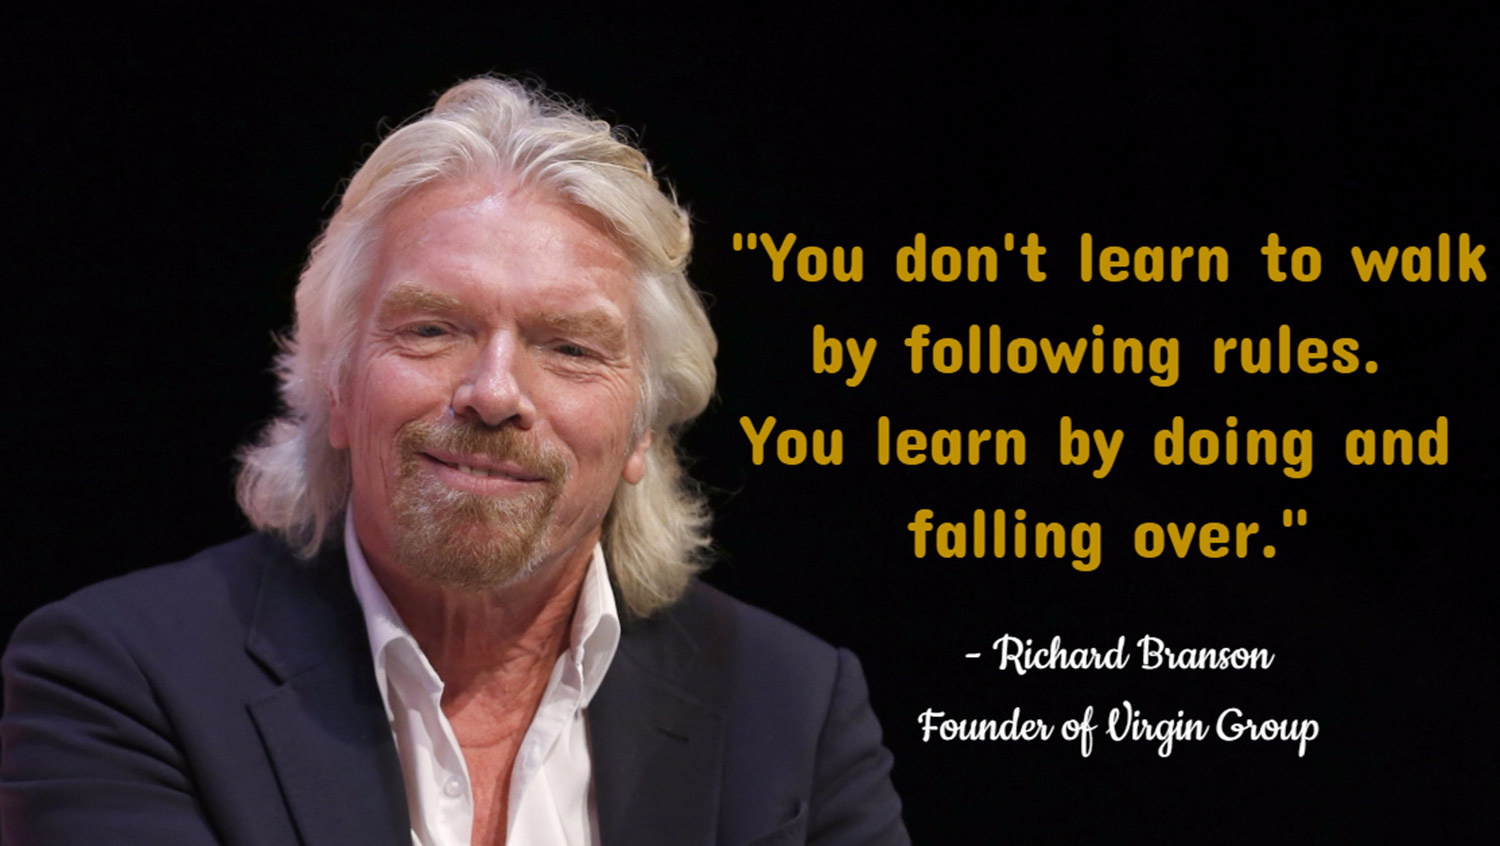 You don't learn to walk by following rules. You learn by doing and falling over. - Richard Branson, Founder of Virgin Group.